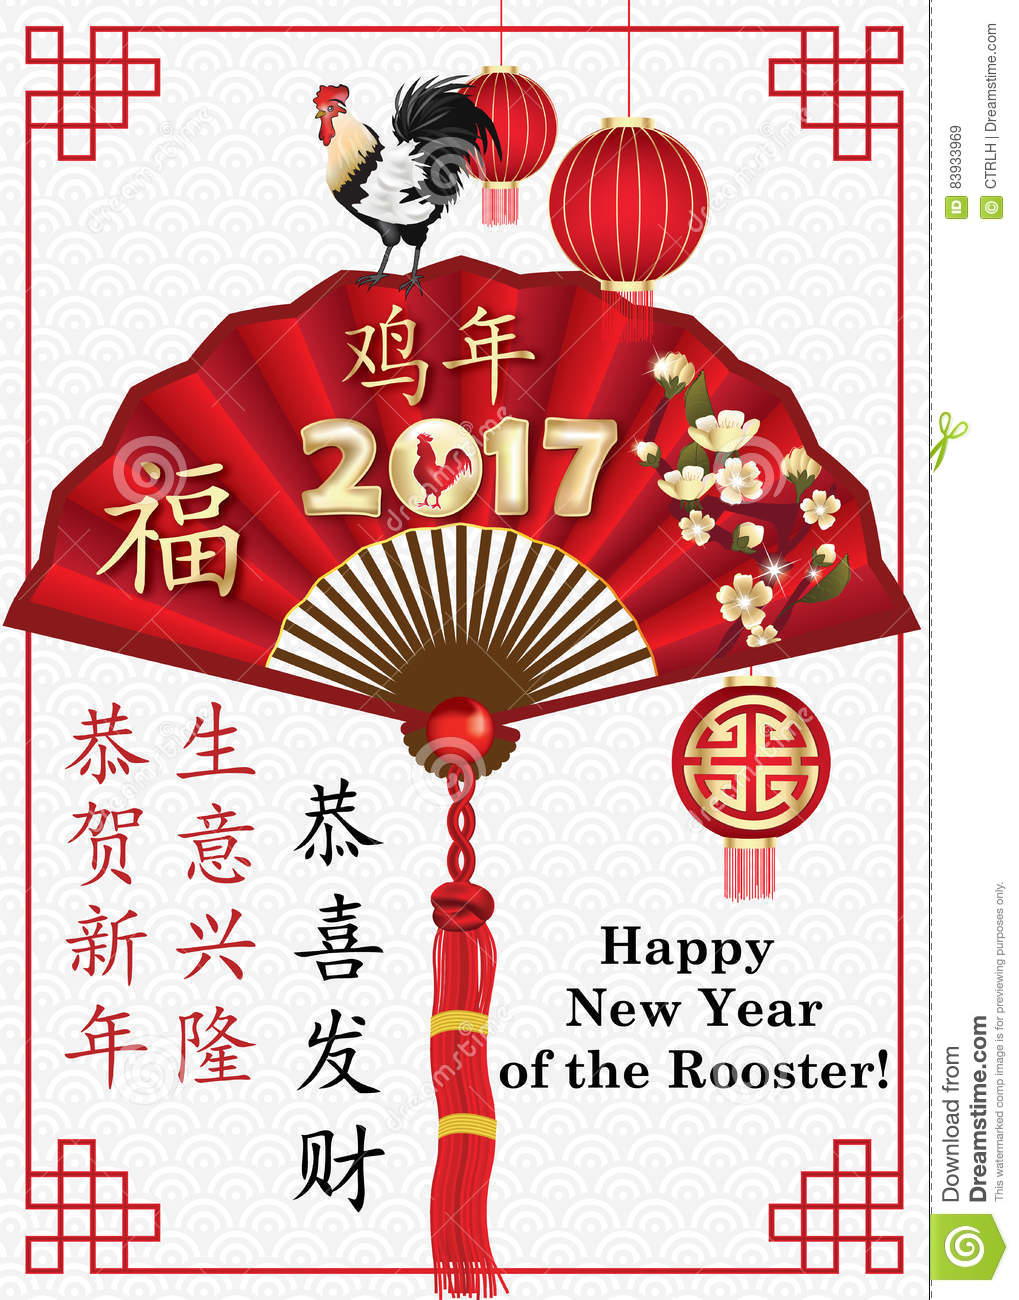 corporate chinese new year of rooster 2017 printable greeting card